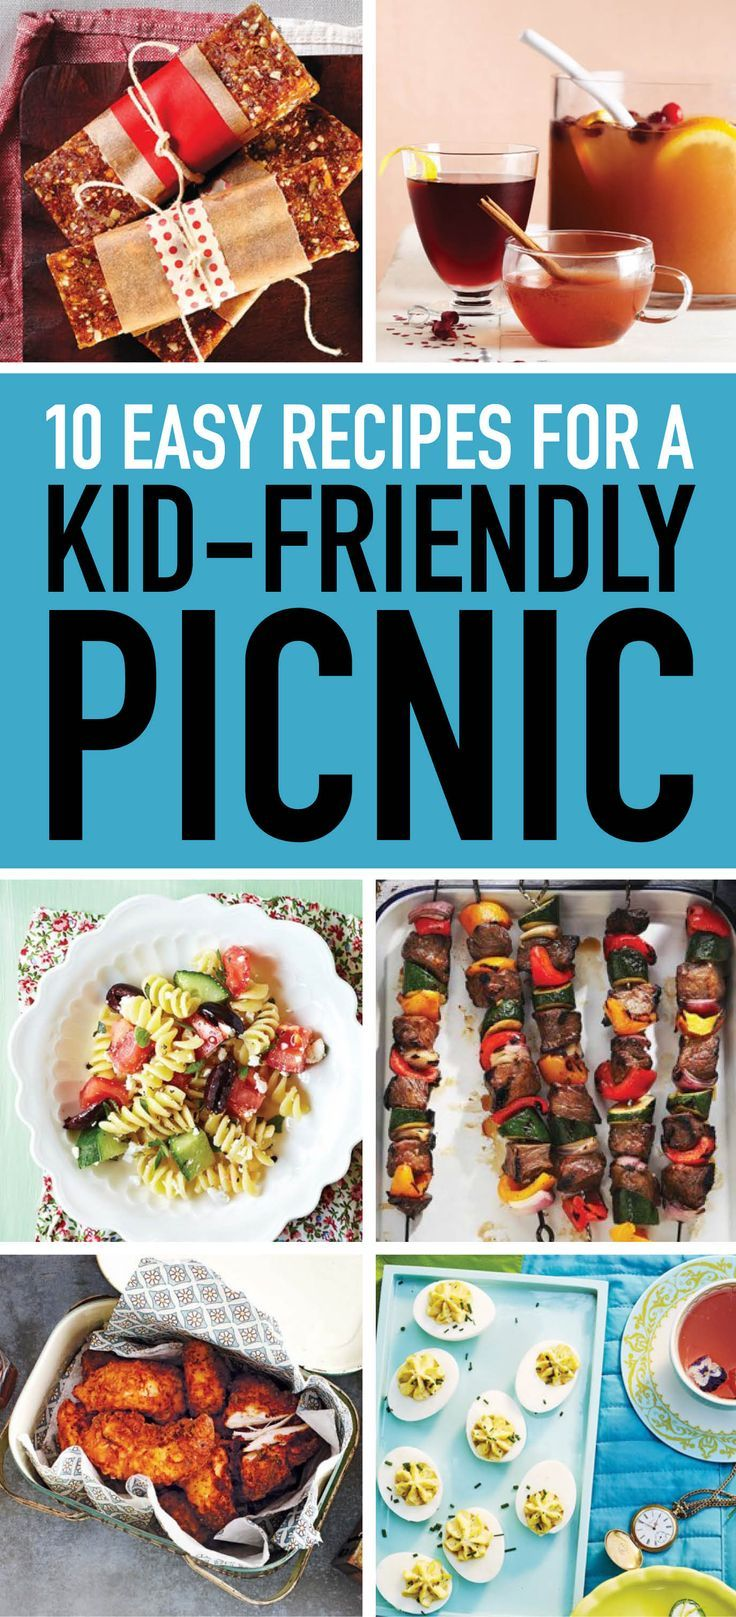 We've done all the planning for you with this kid-friendly picnic menu.